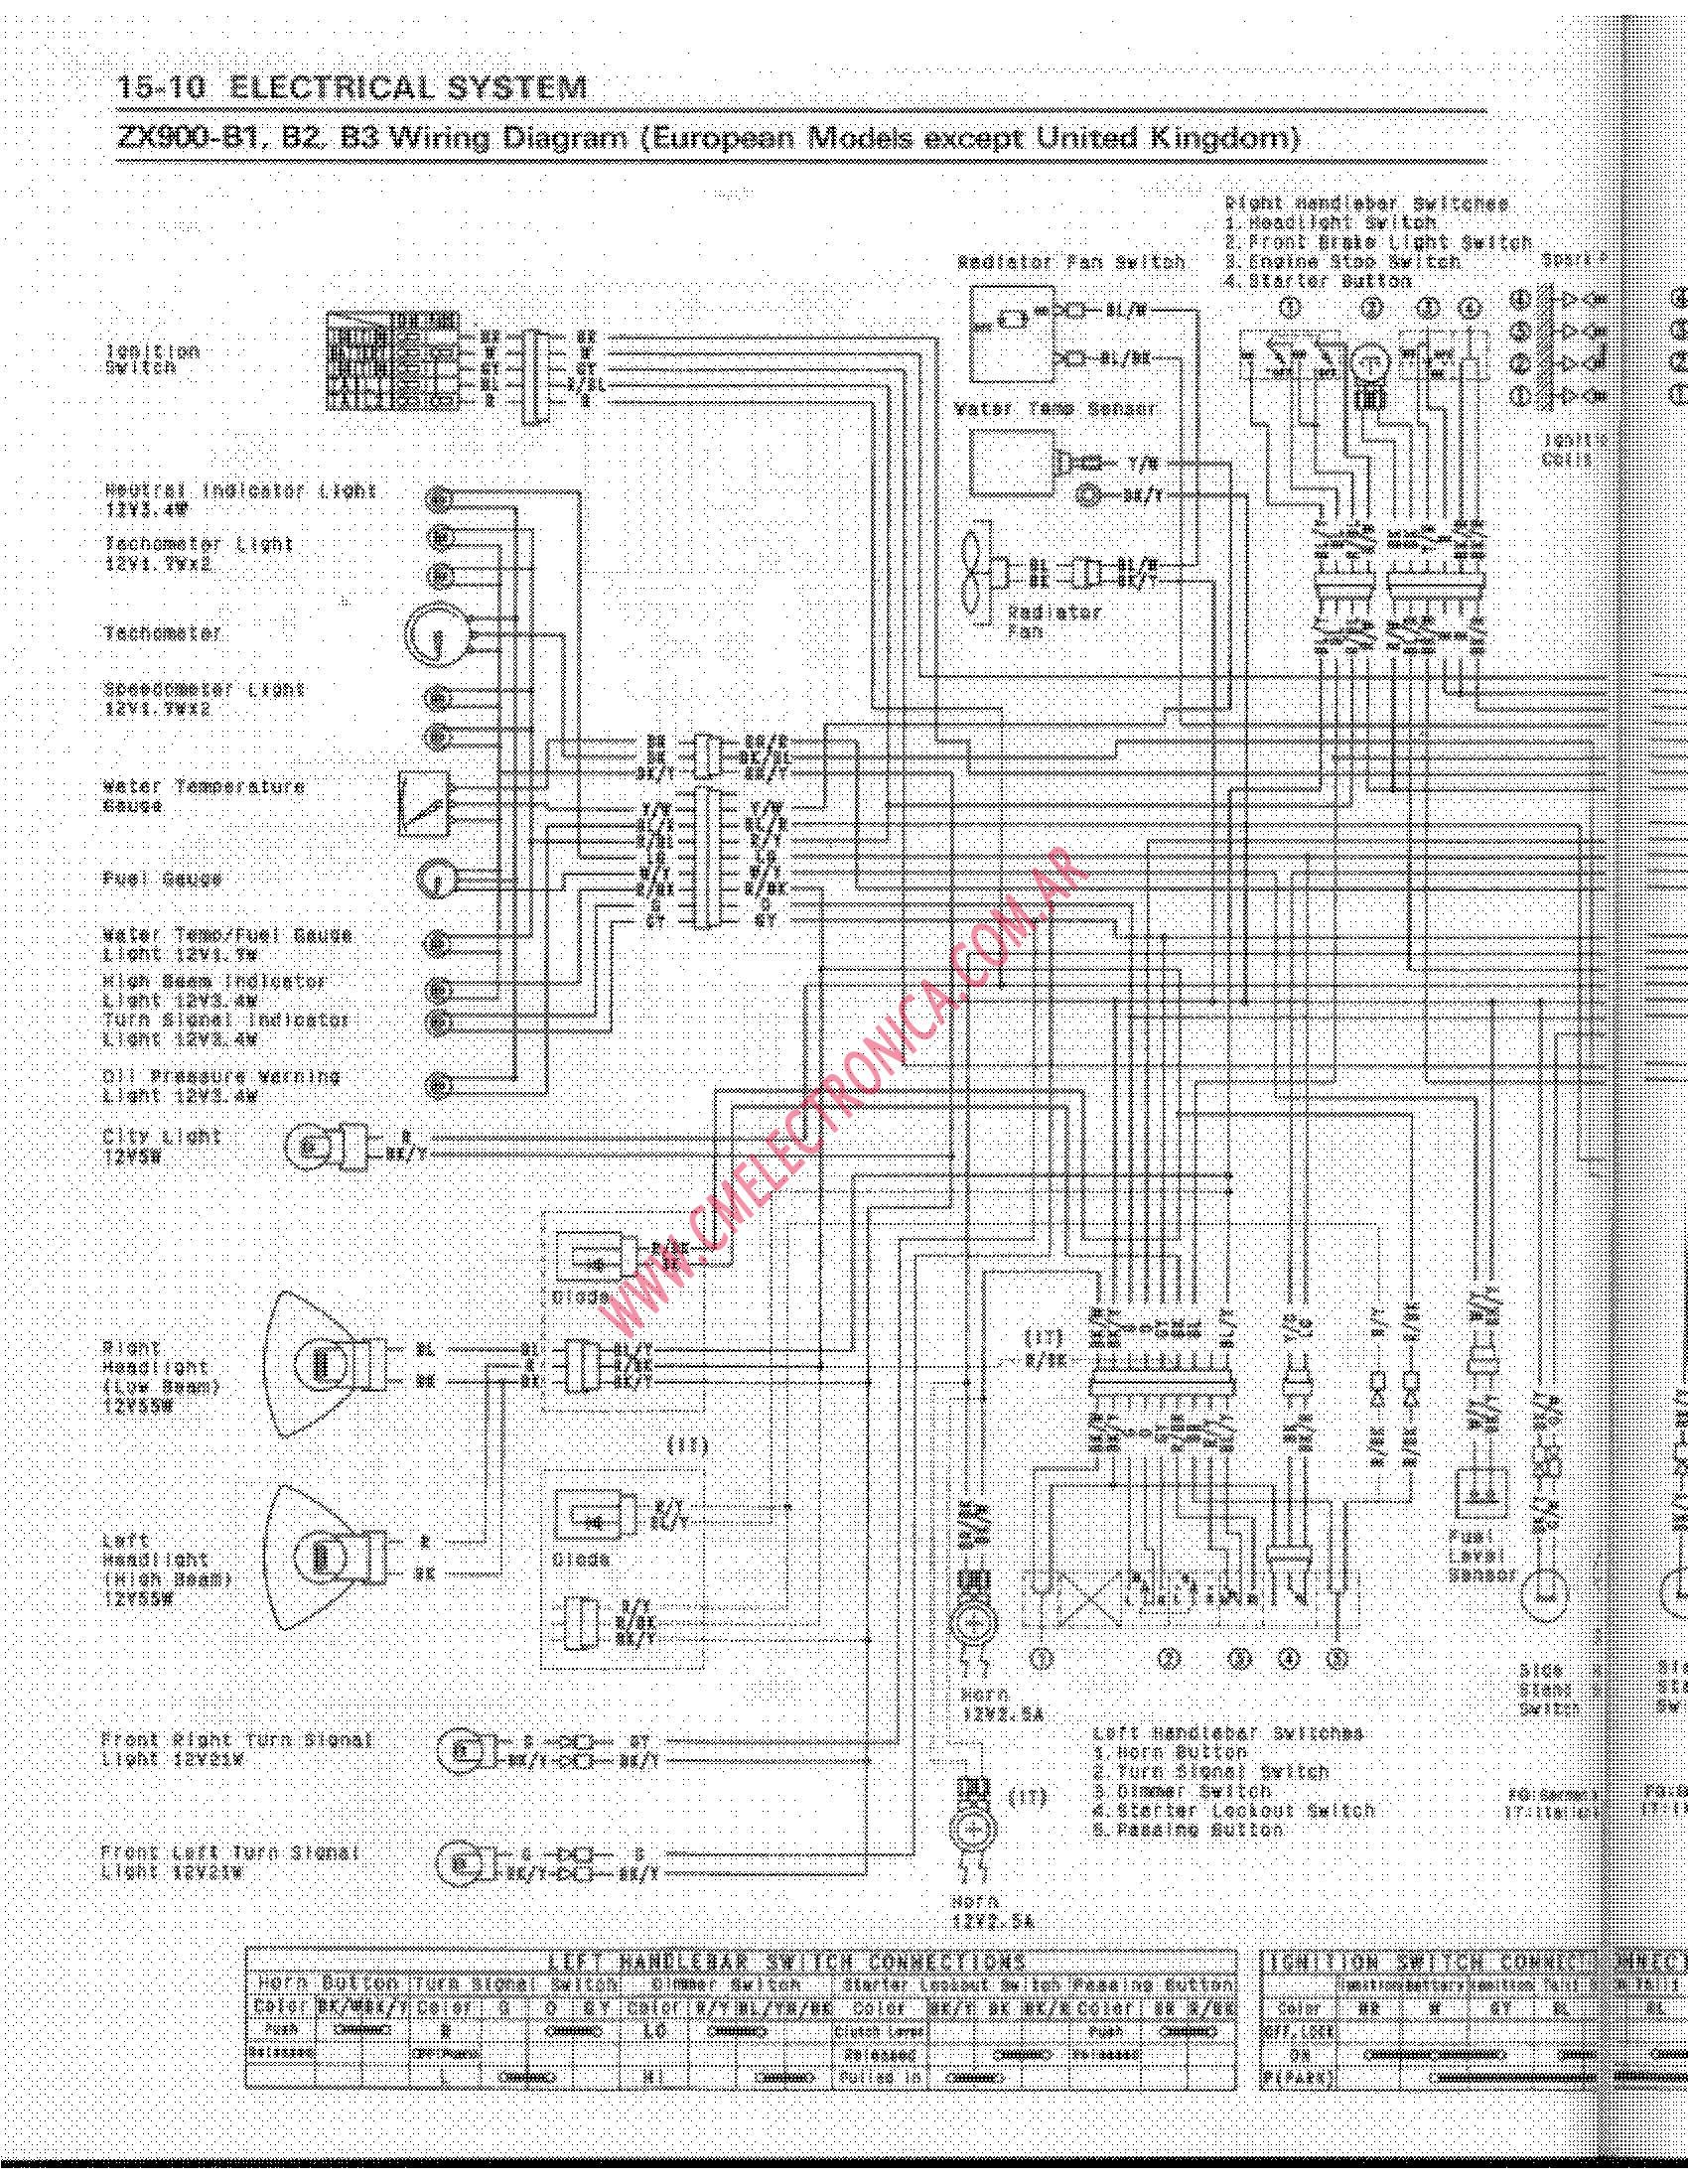 kawasaki zx9r 96 kawasaki zx9r wiring diagram wiring diagrams kawasaki zx9r e1 wiring diagram at readyjetset.co